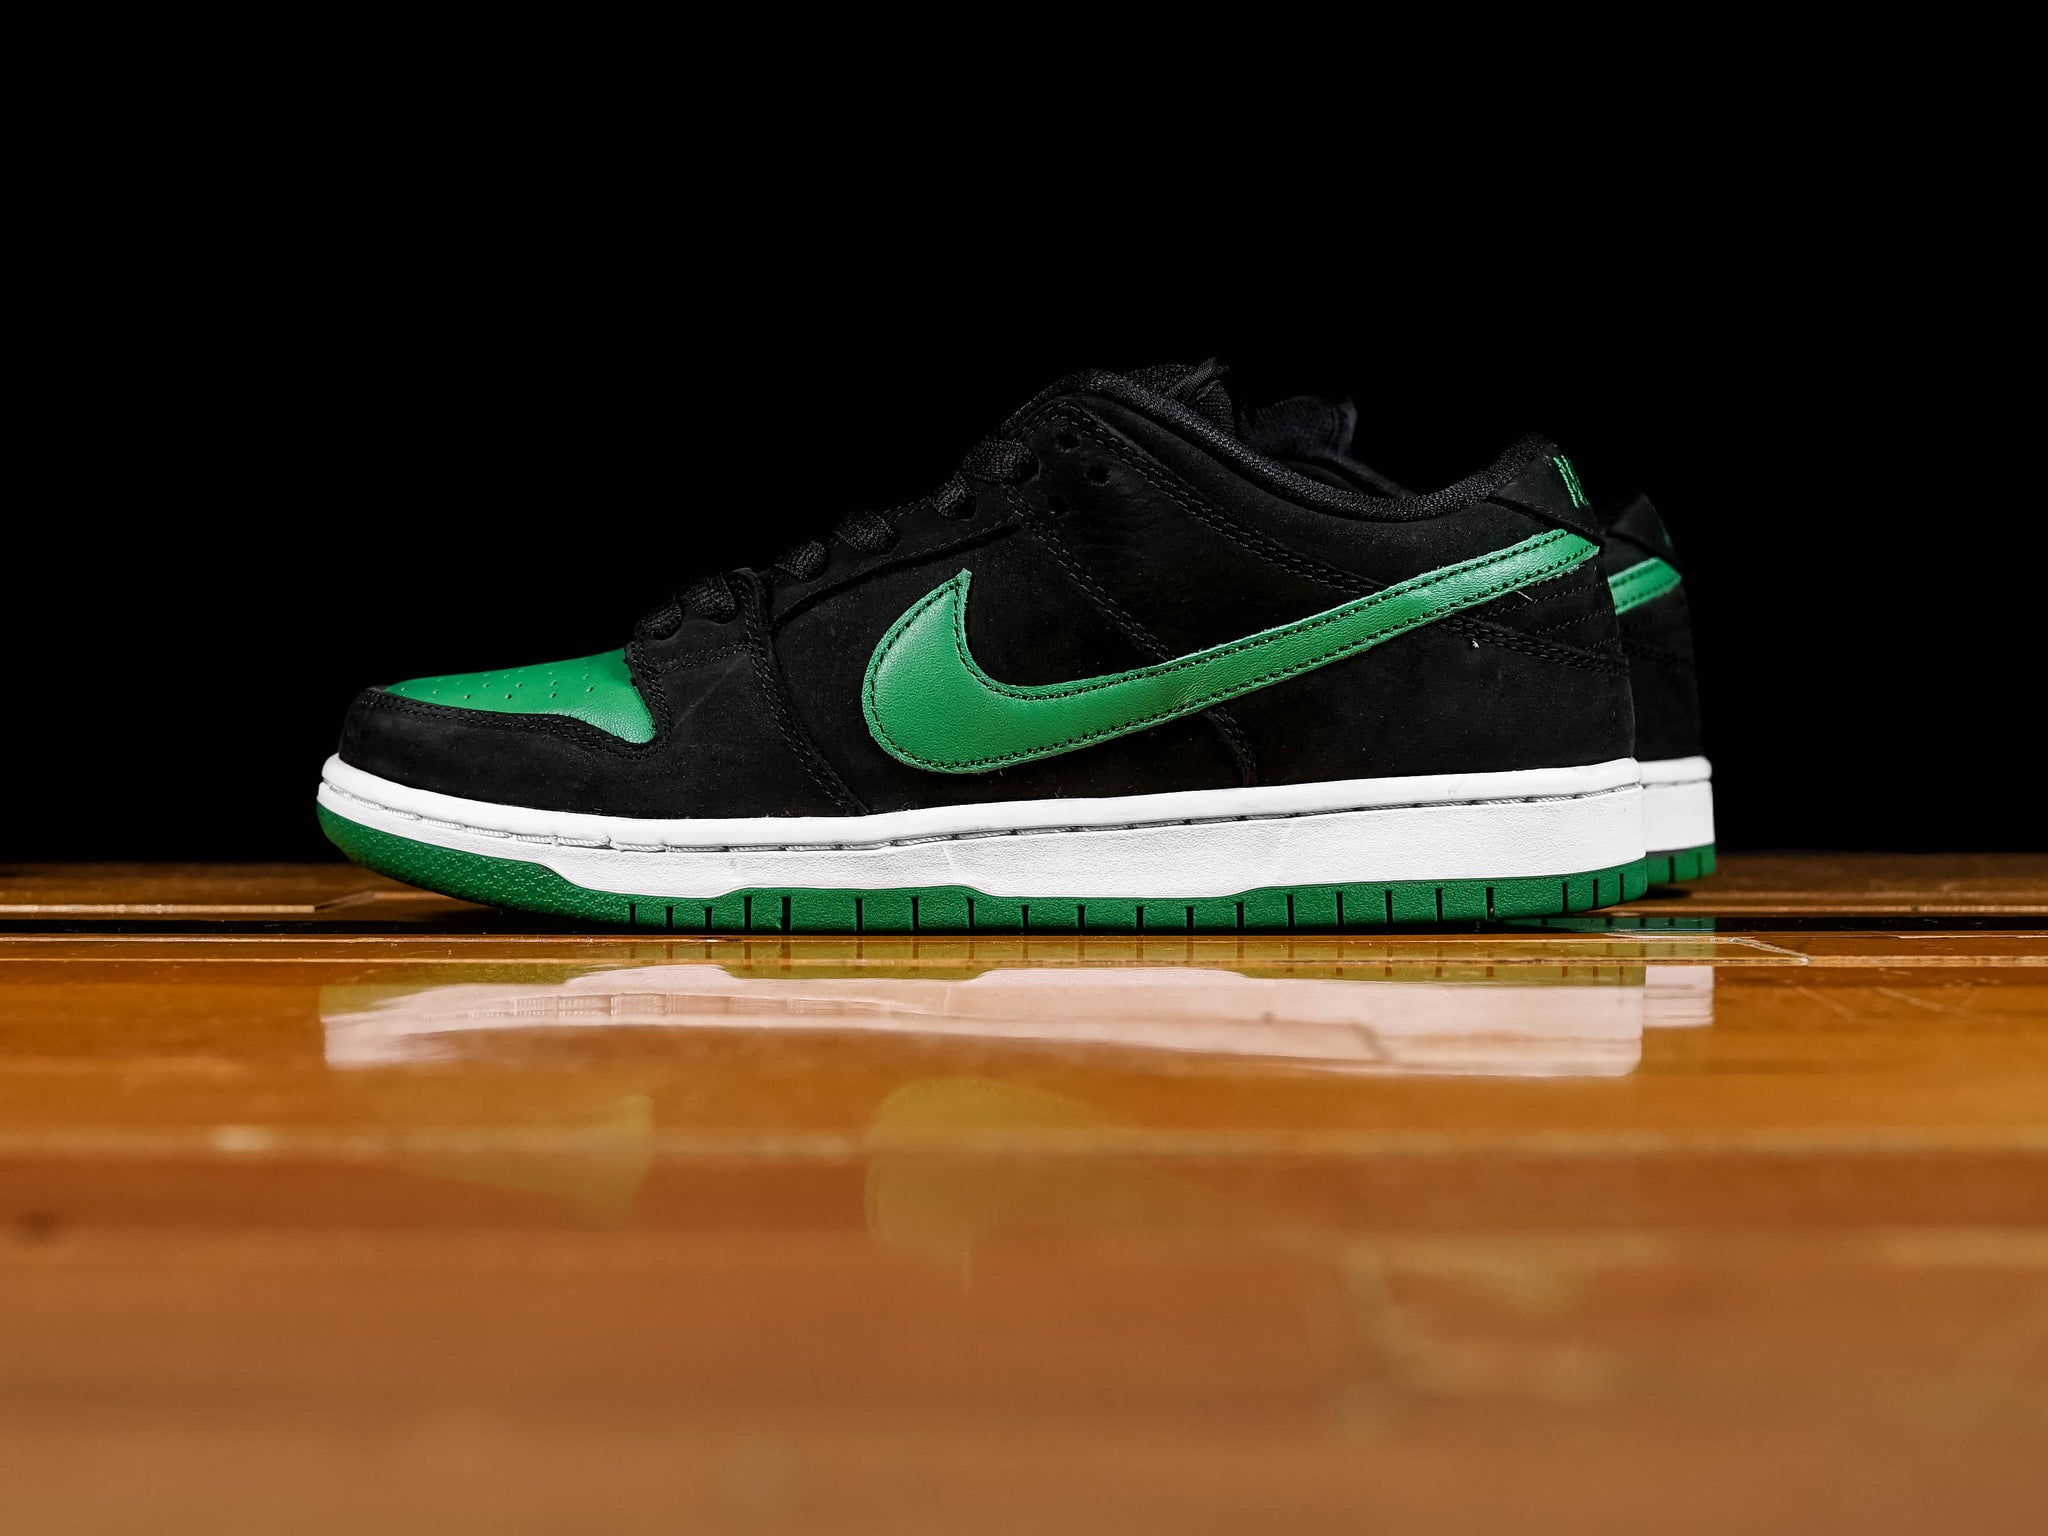 detailed look 4776f bff84 Men's Nike SB Dunk Low Pro [BQ6817-005]